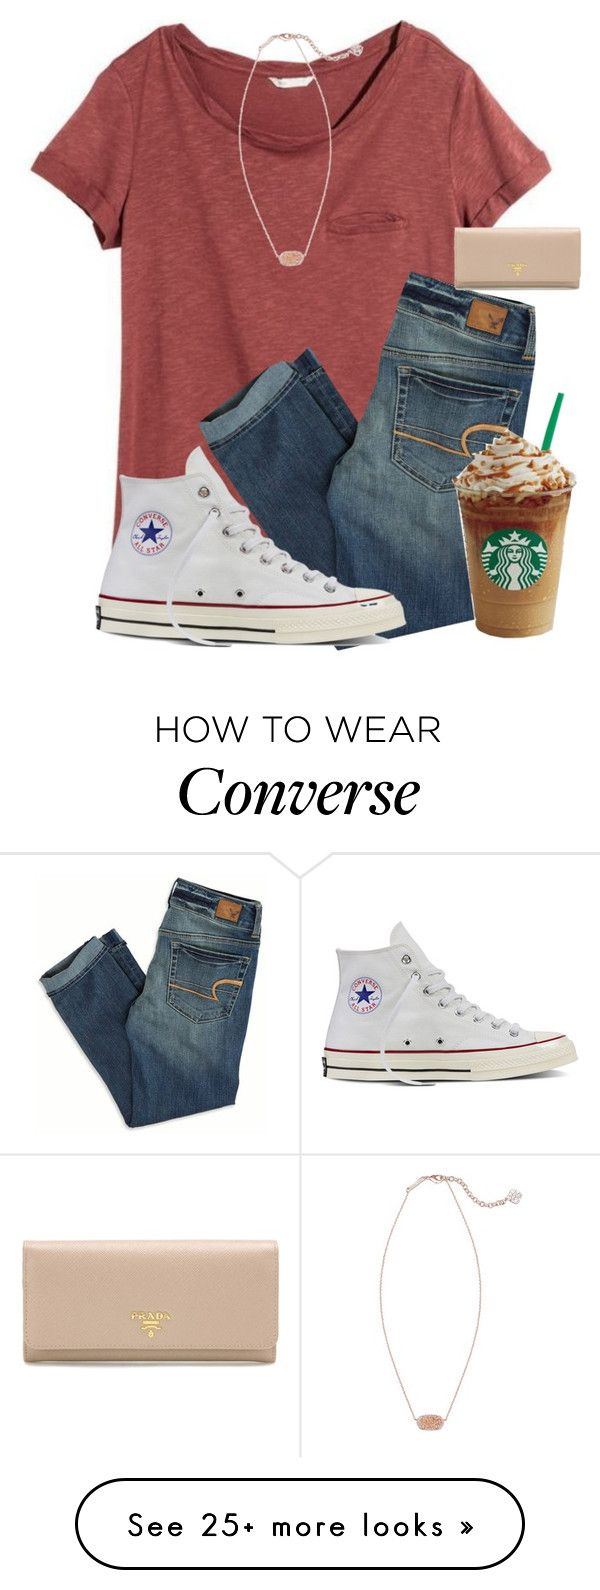 """Not my preppiest but eh it's Monday "" by mmprep on Polyvore featuring H&M, American Eagle Outfitters, Kendra Scott, Converse and Prada"